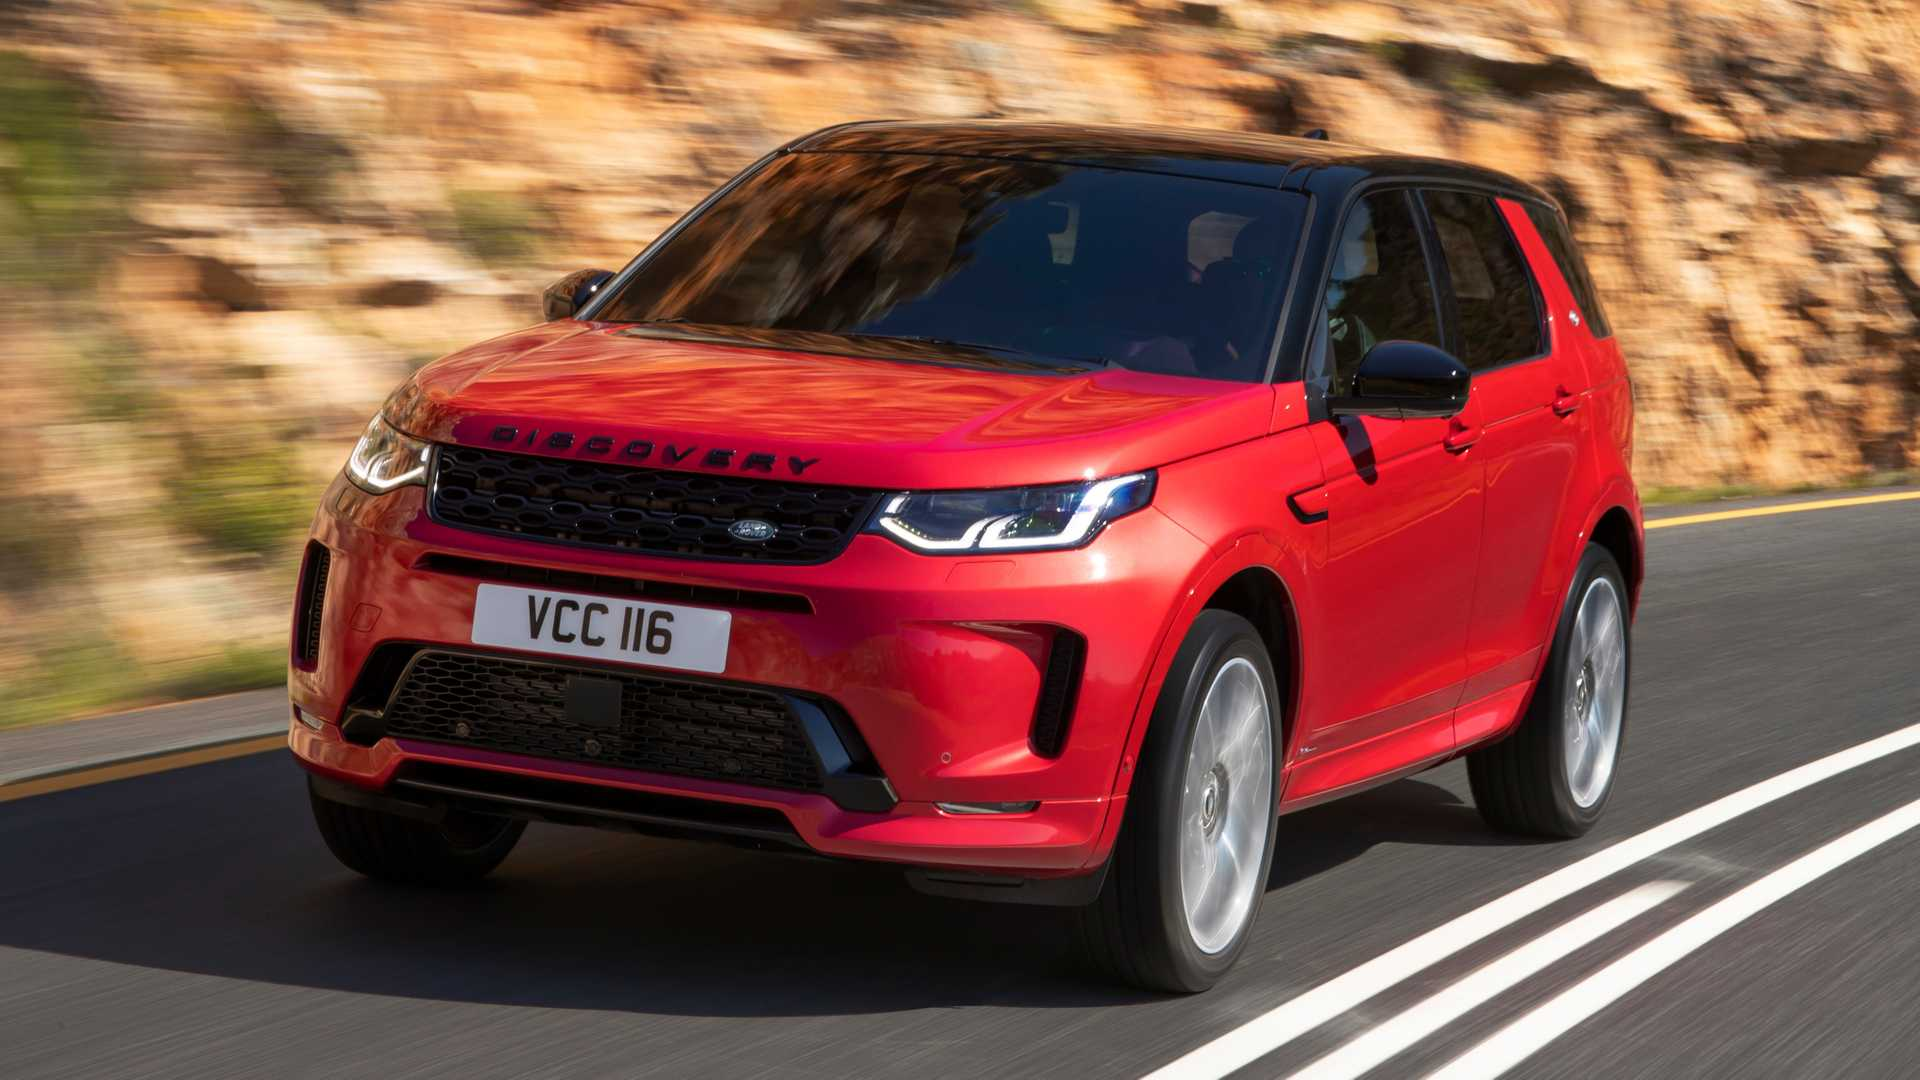 19 All New 2020 Land Rover Discovery Sport Images